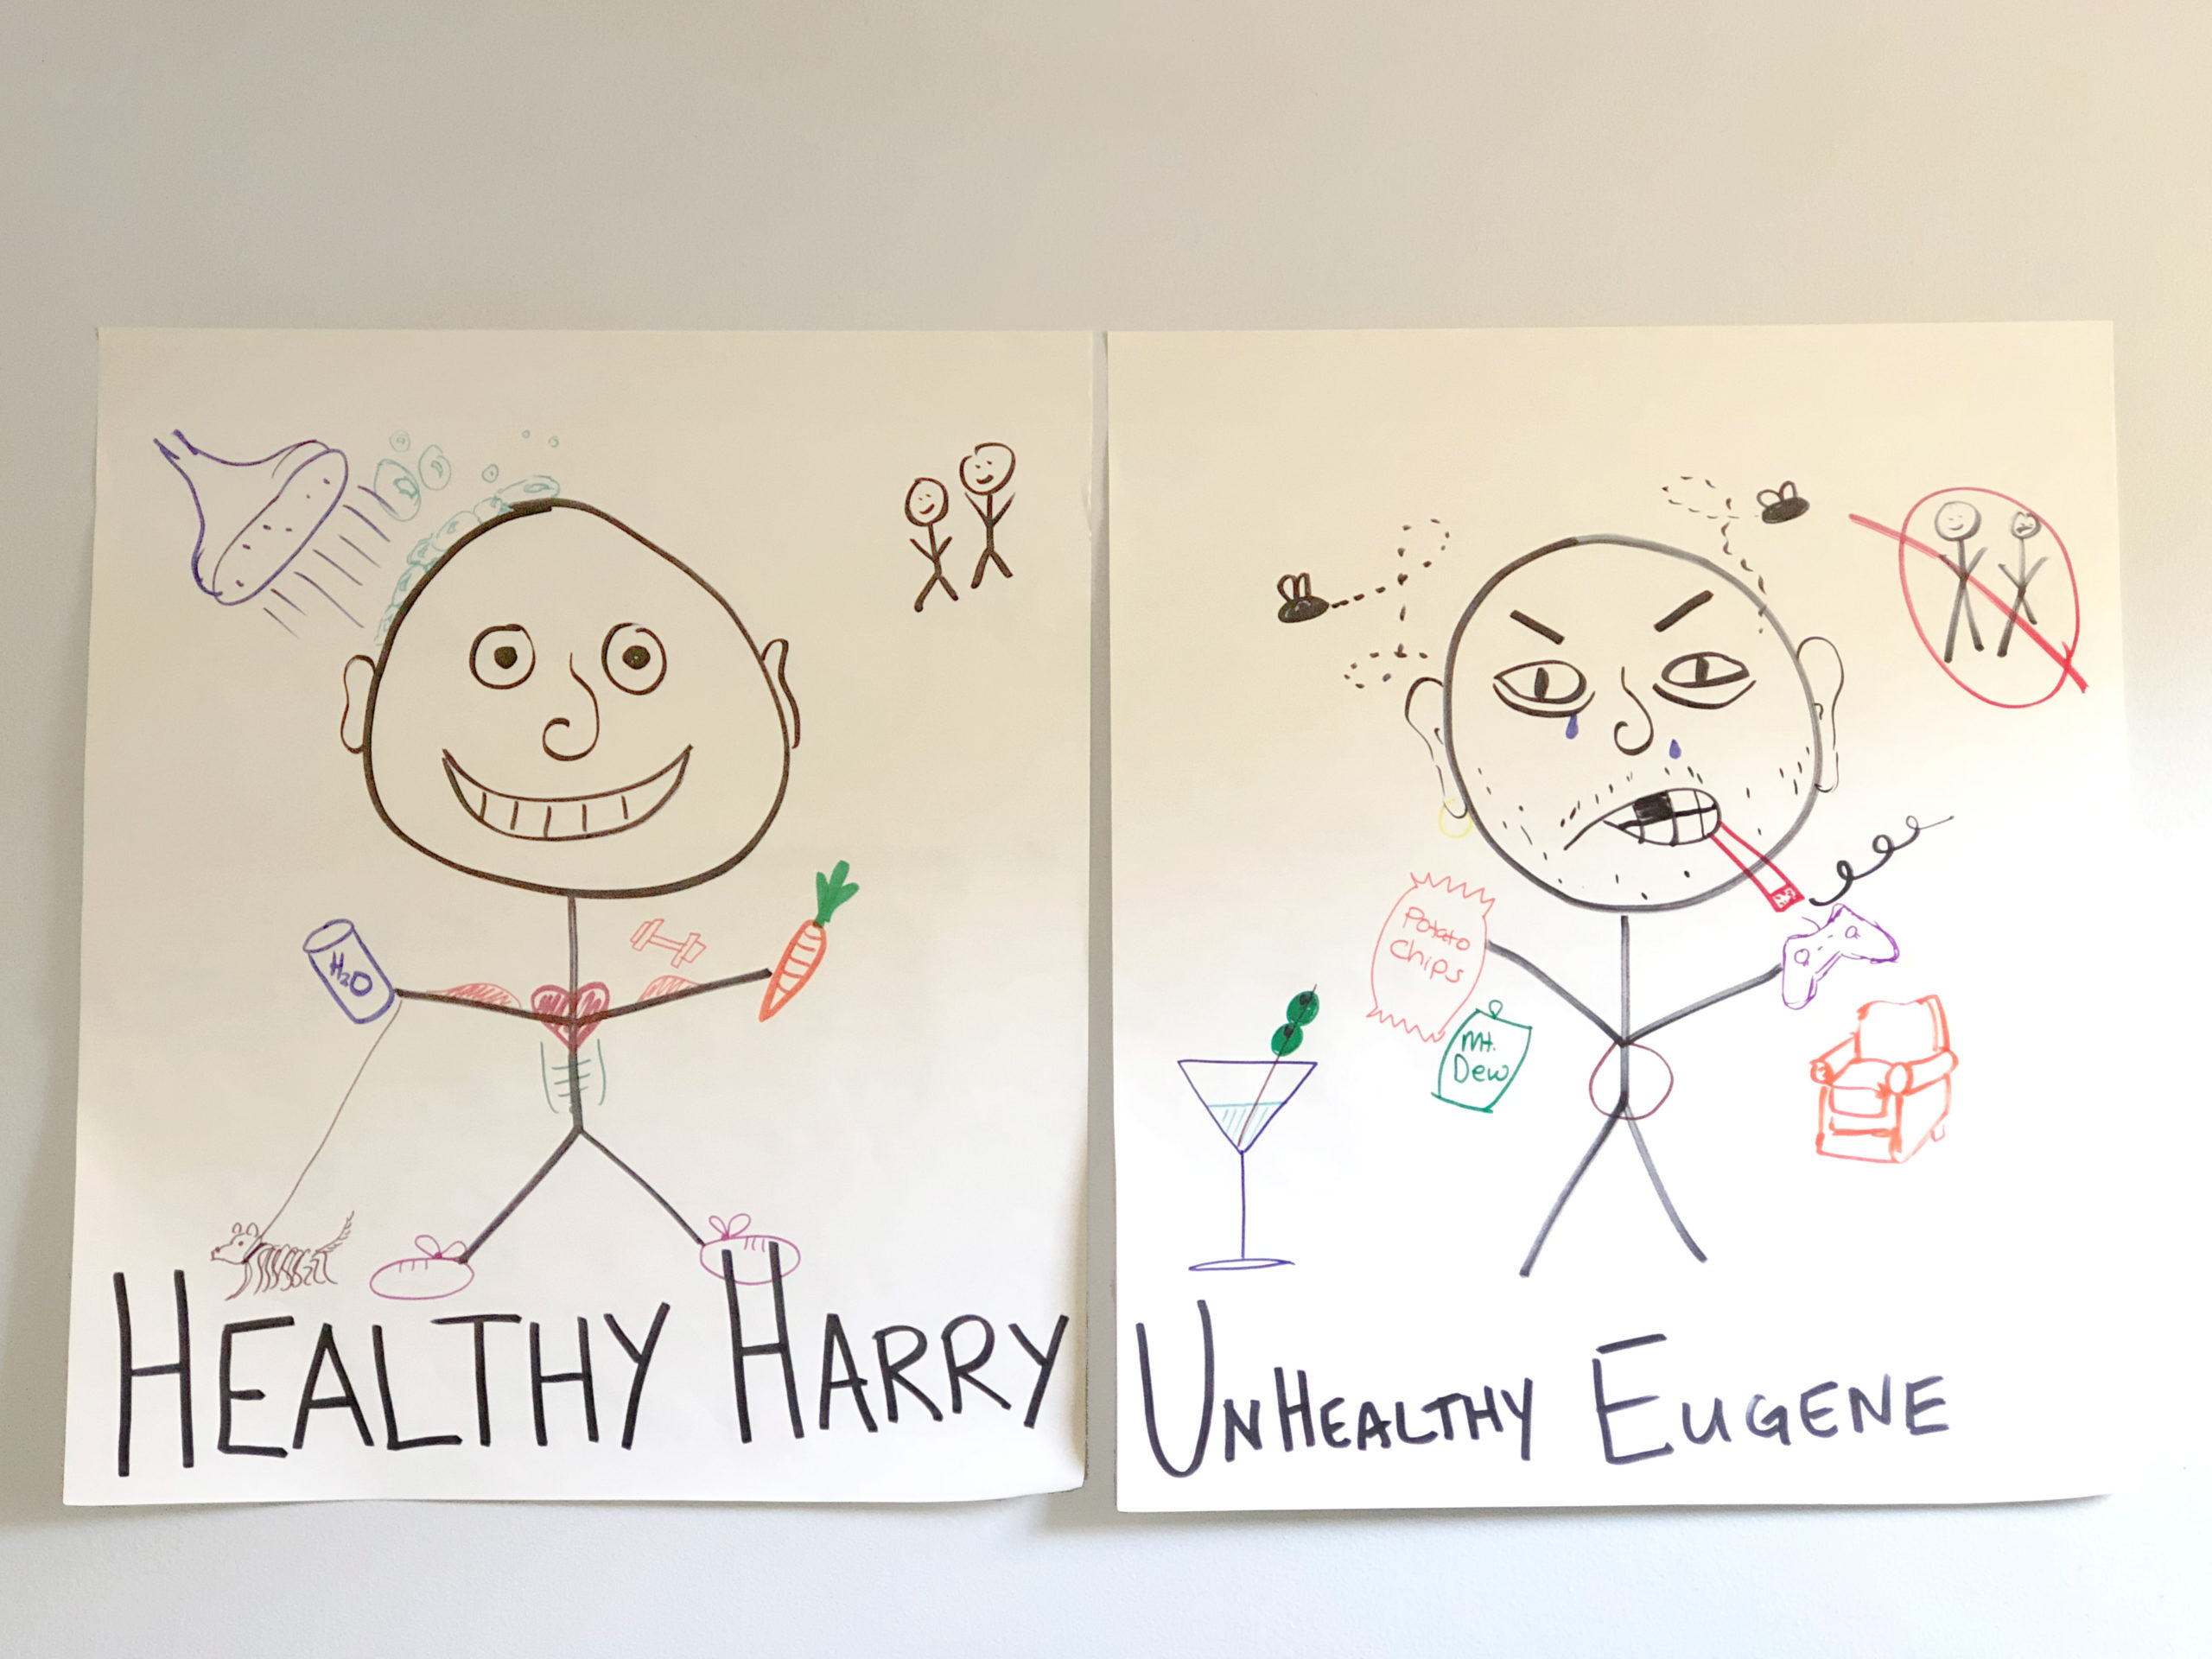 Stick figure representing someone with healthy habits and another stick figure representing someone with unhealthy habits